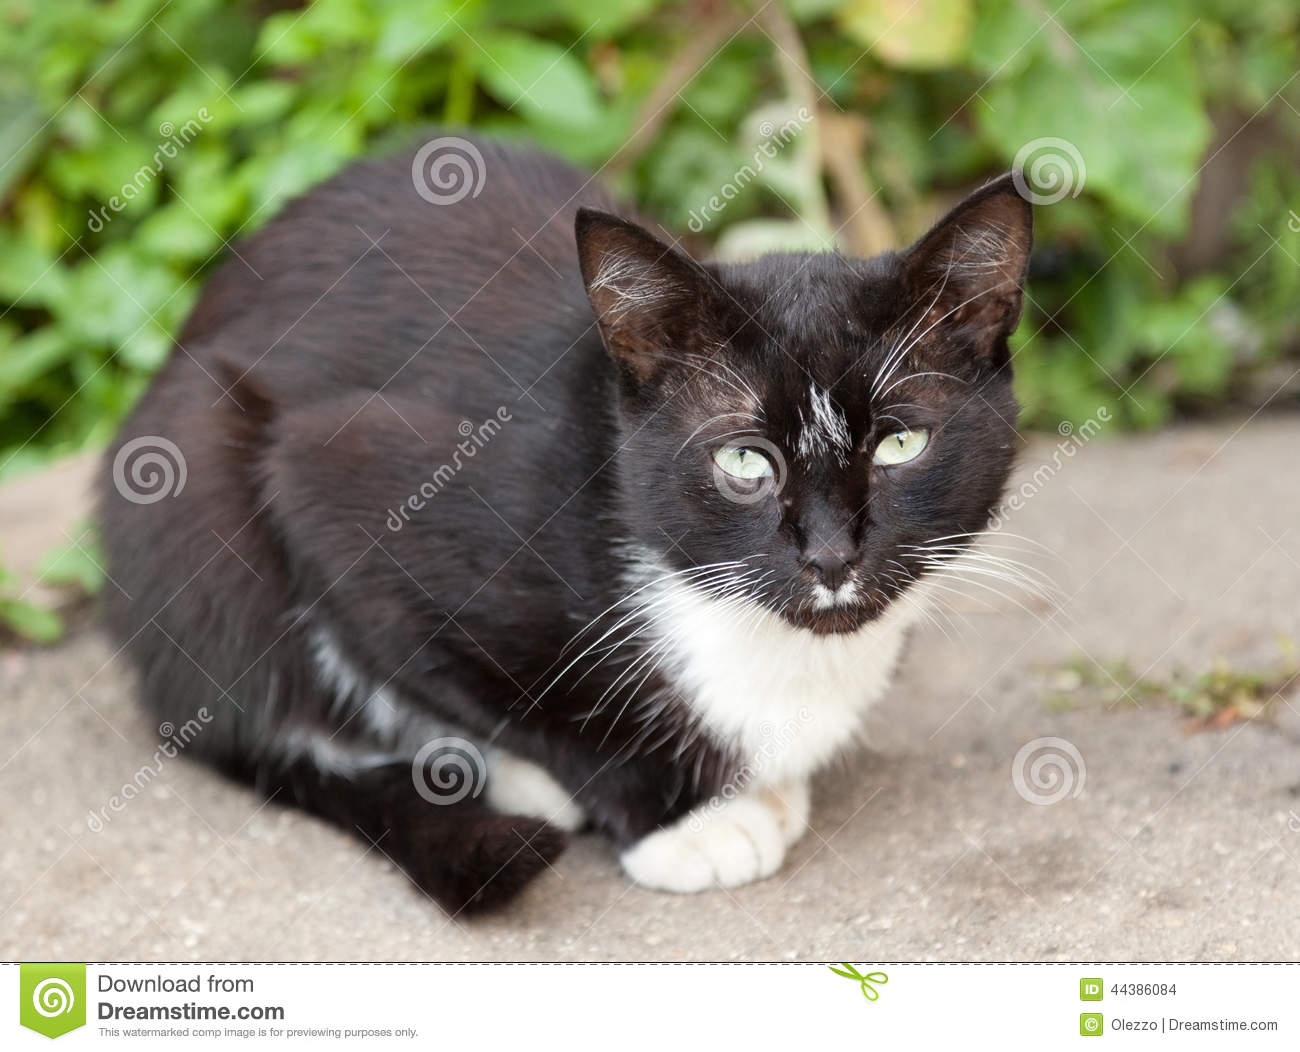 Funny Black And White Cat Stock Photo - Image: 44386084